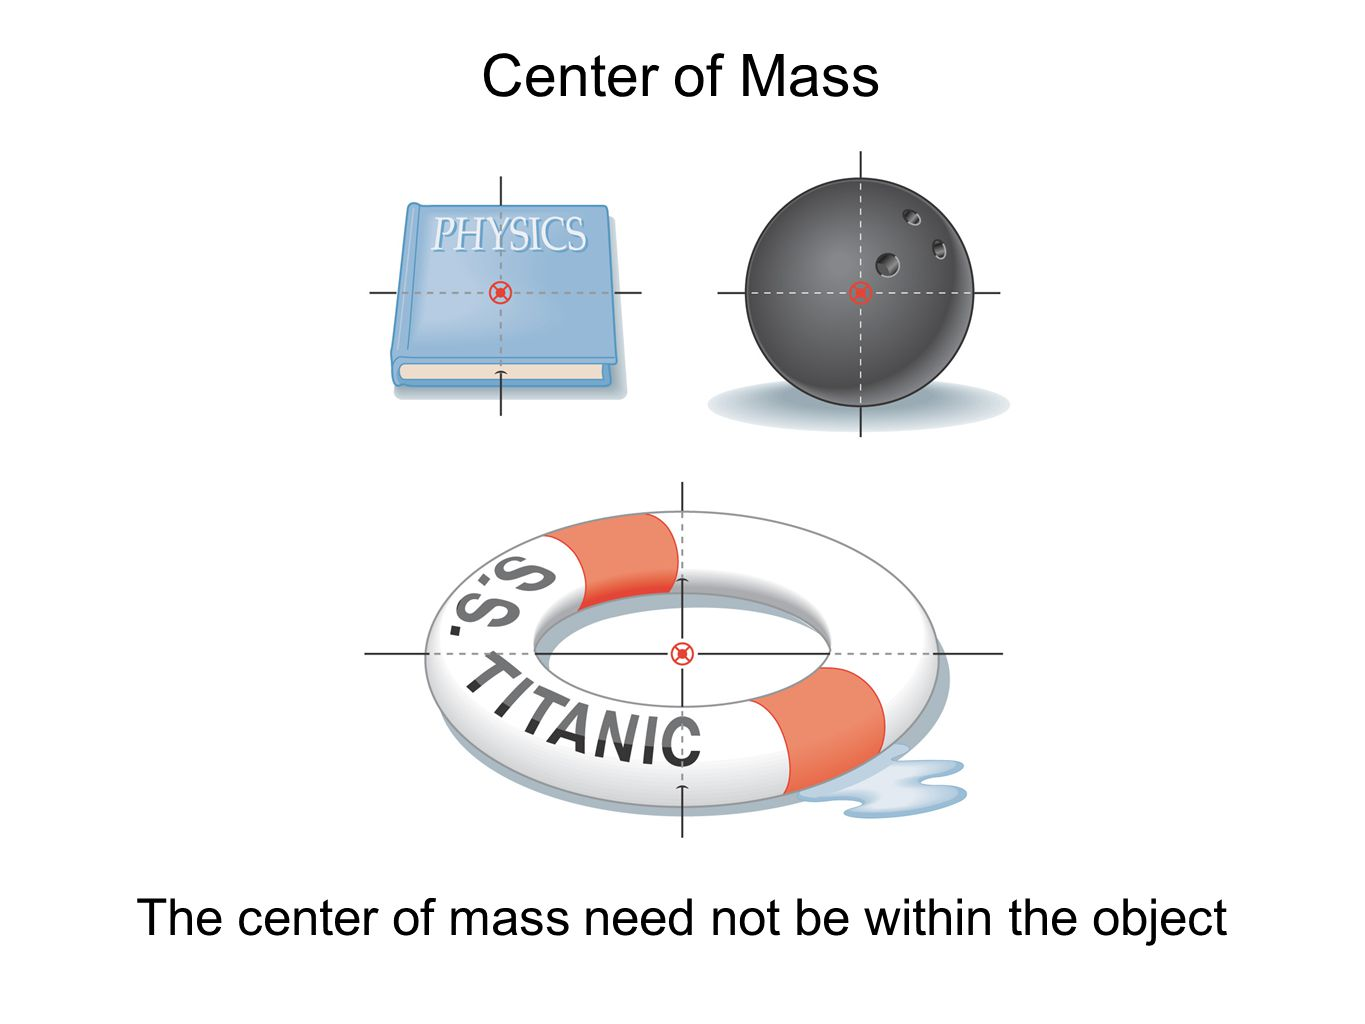 The center of mass need not be within the object